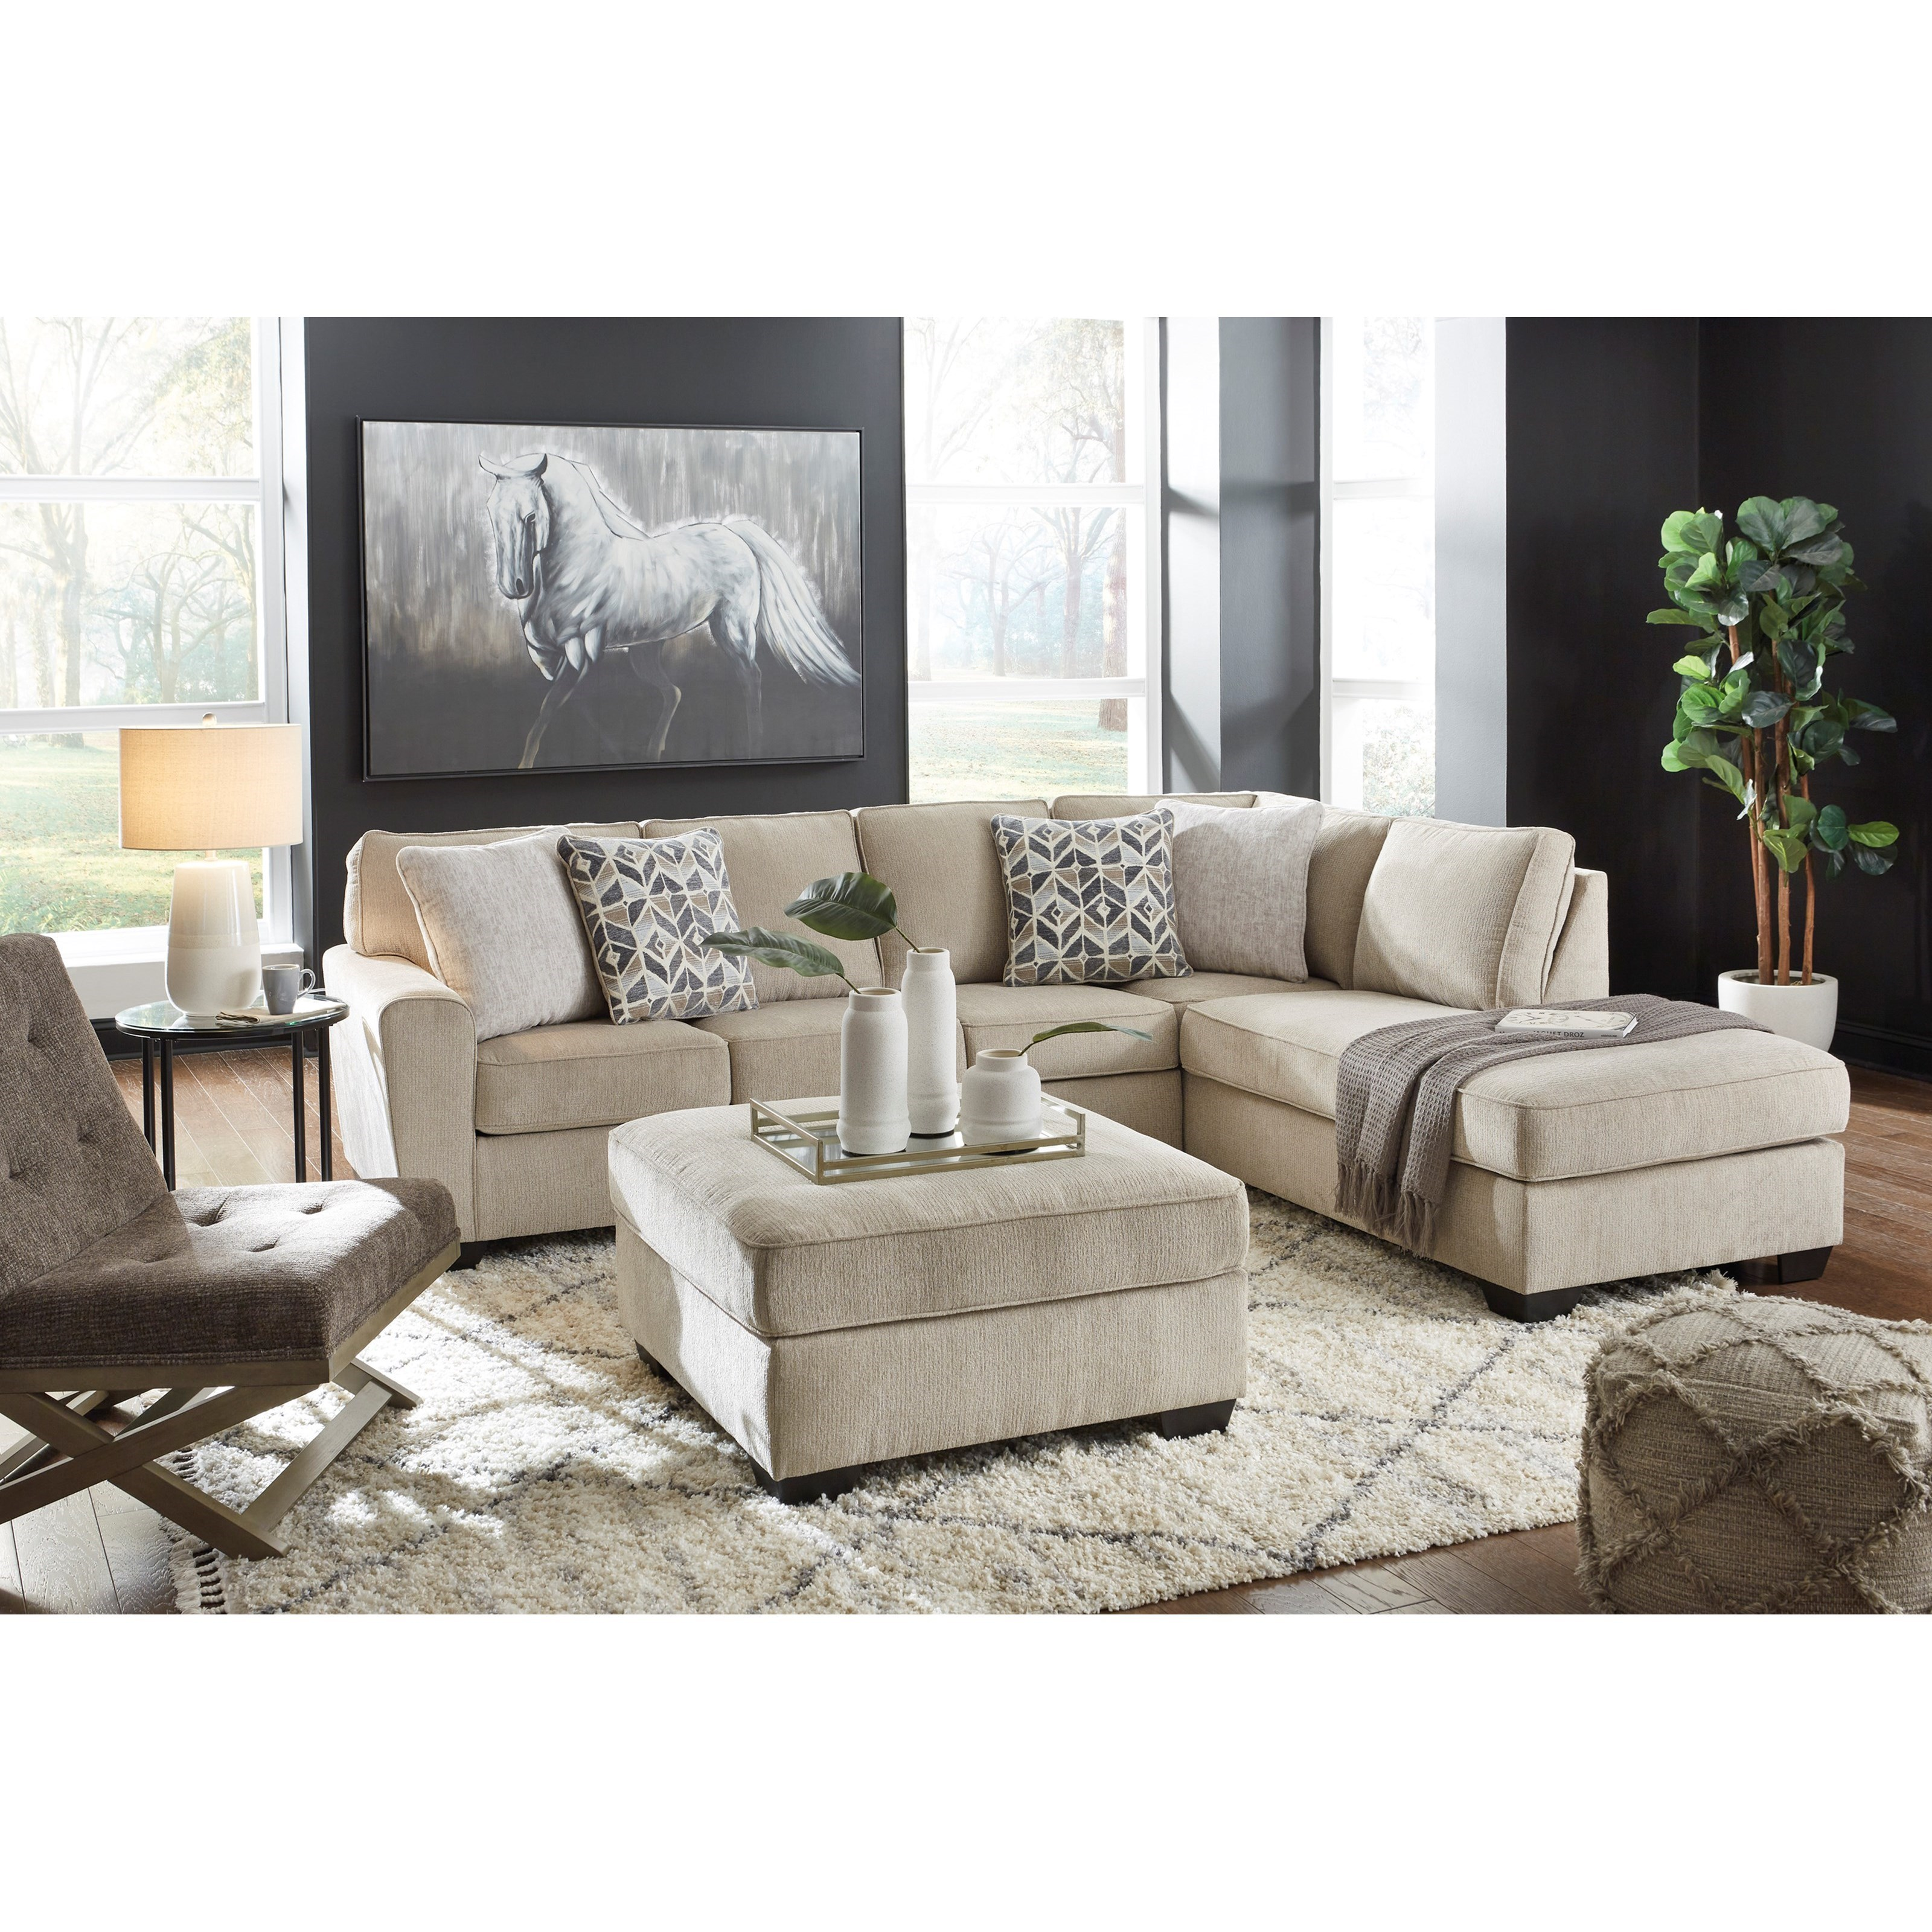 Decelle Living Room Group by Ashley (Signature Design) at Johnny Janosik